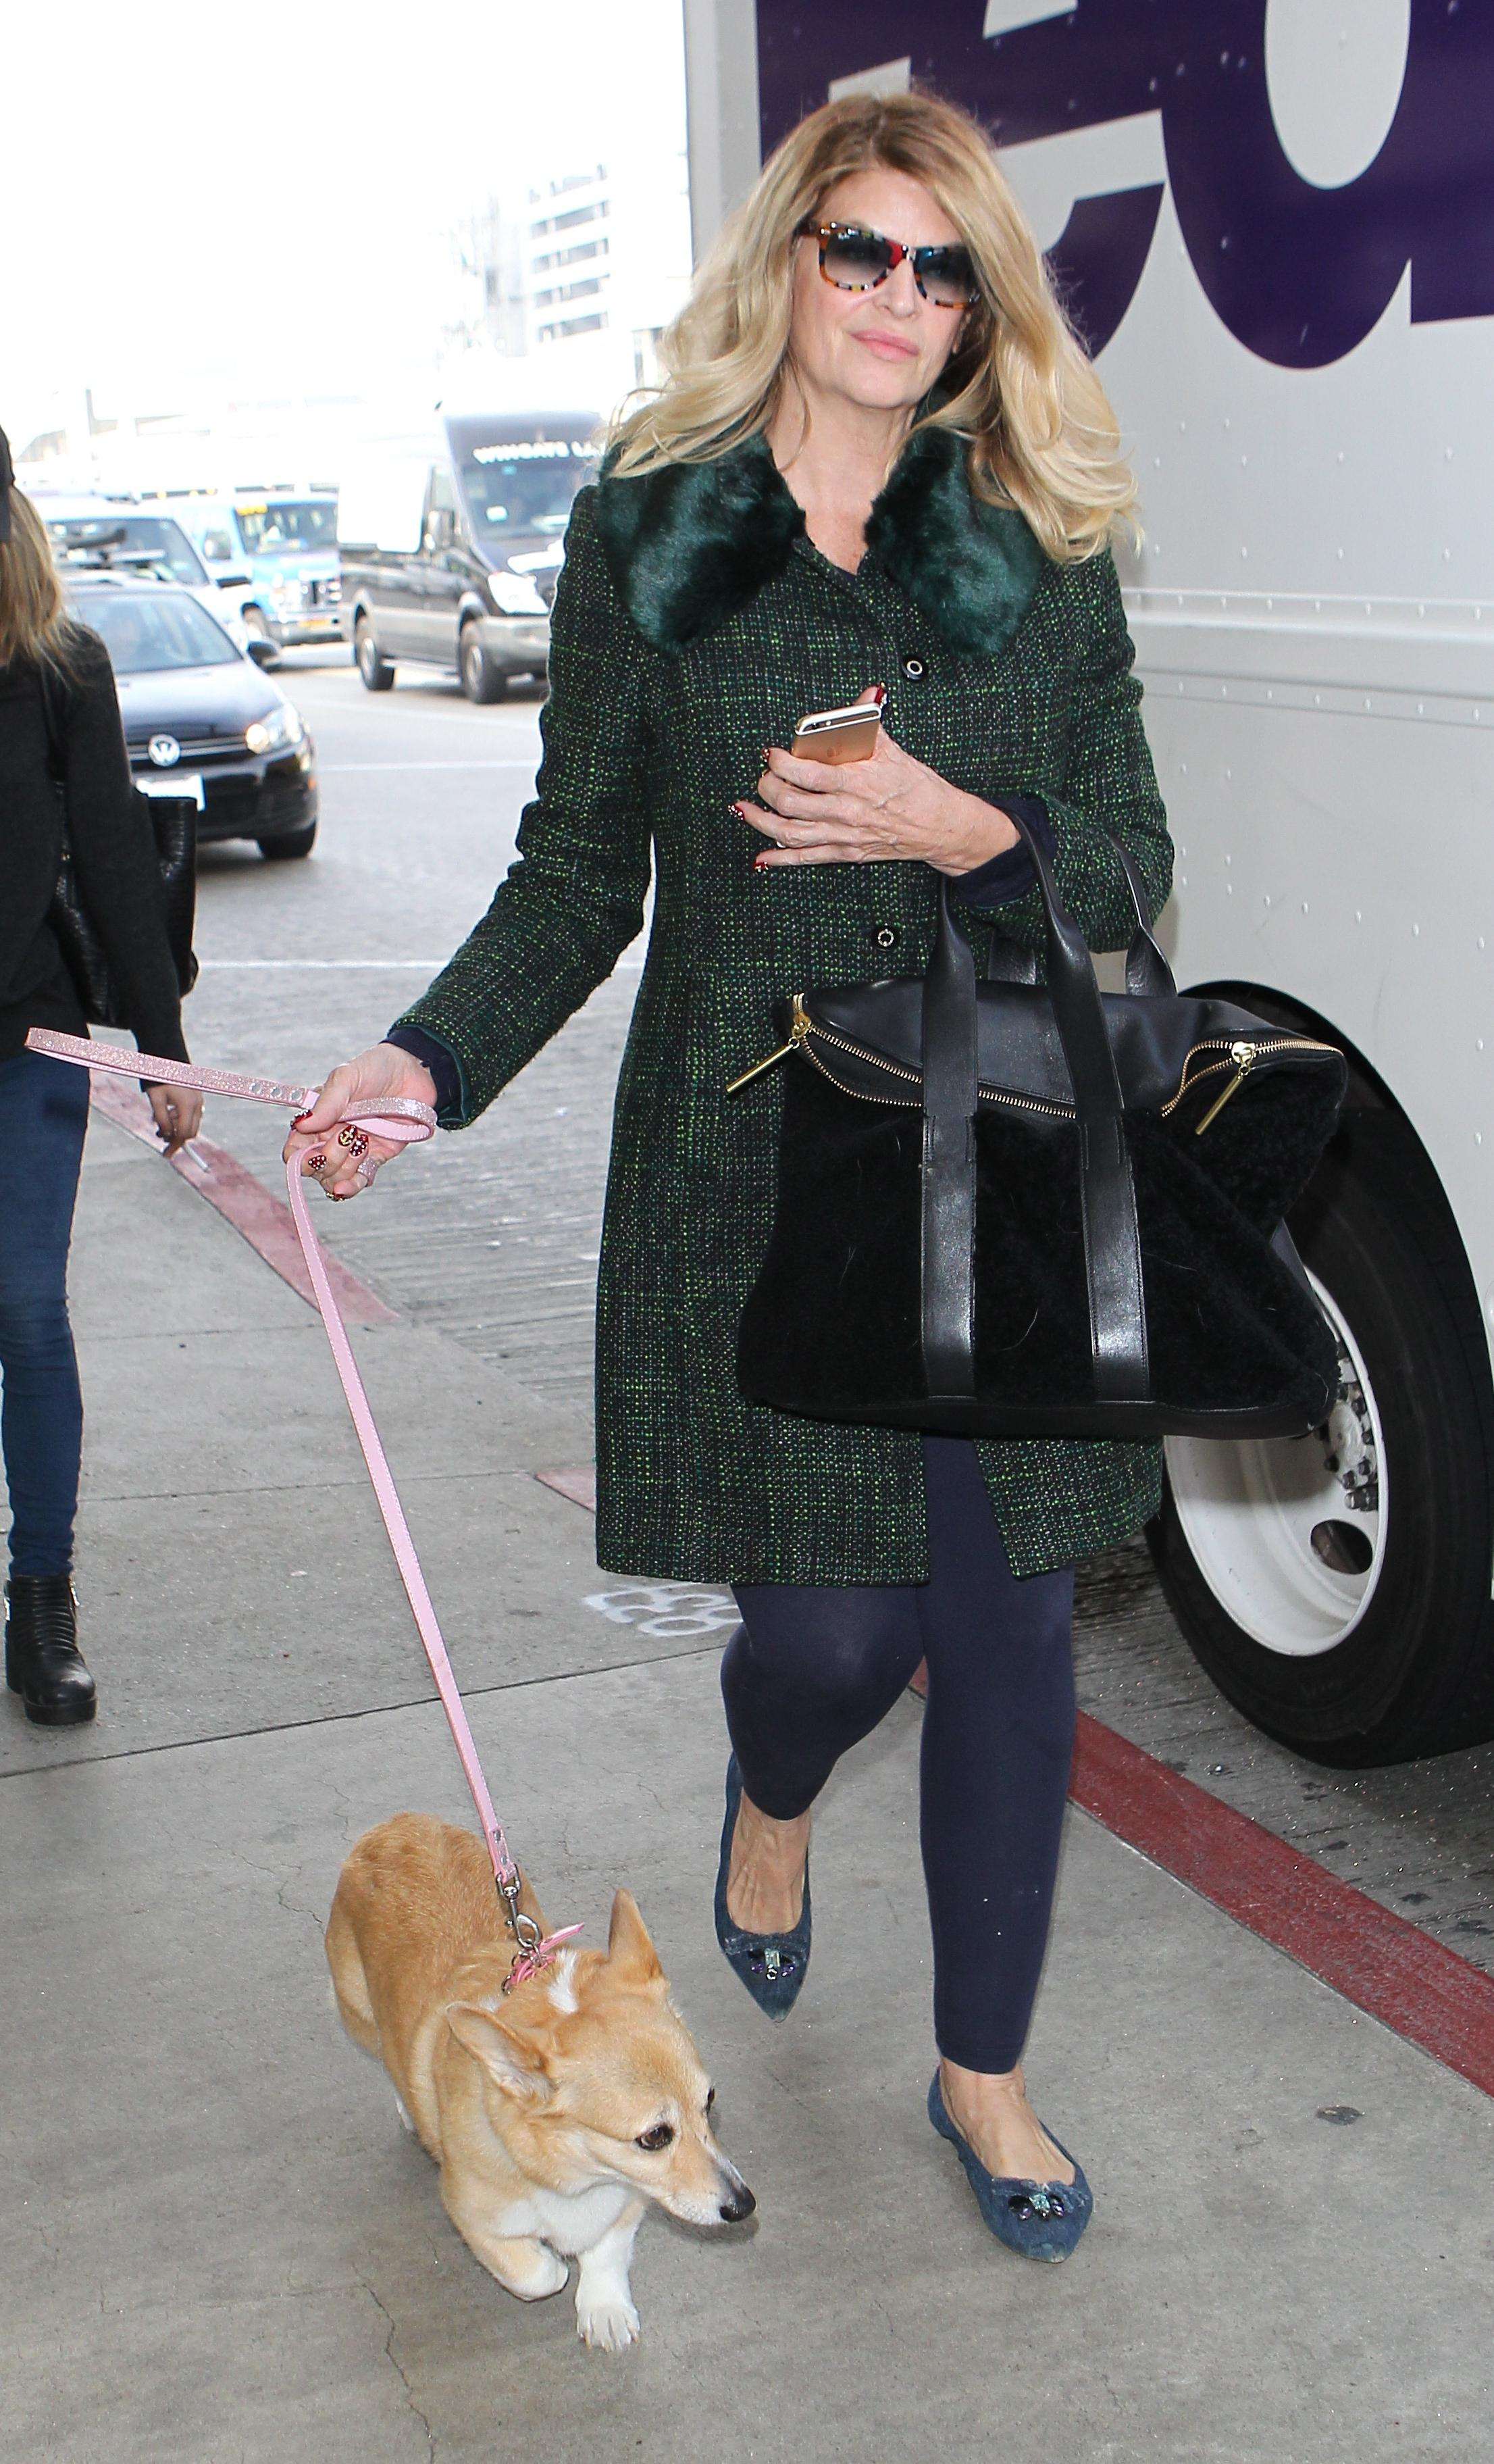 Kirstie Alley arrives for a flight with her dog by her side